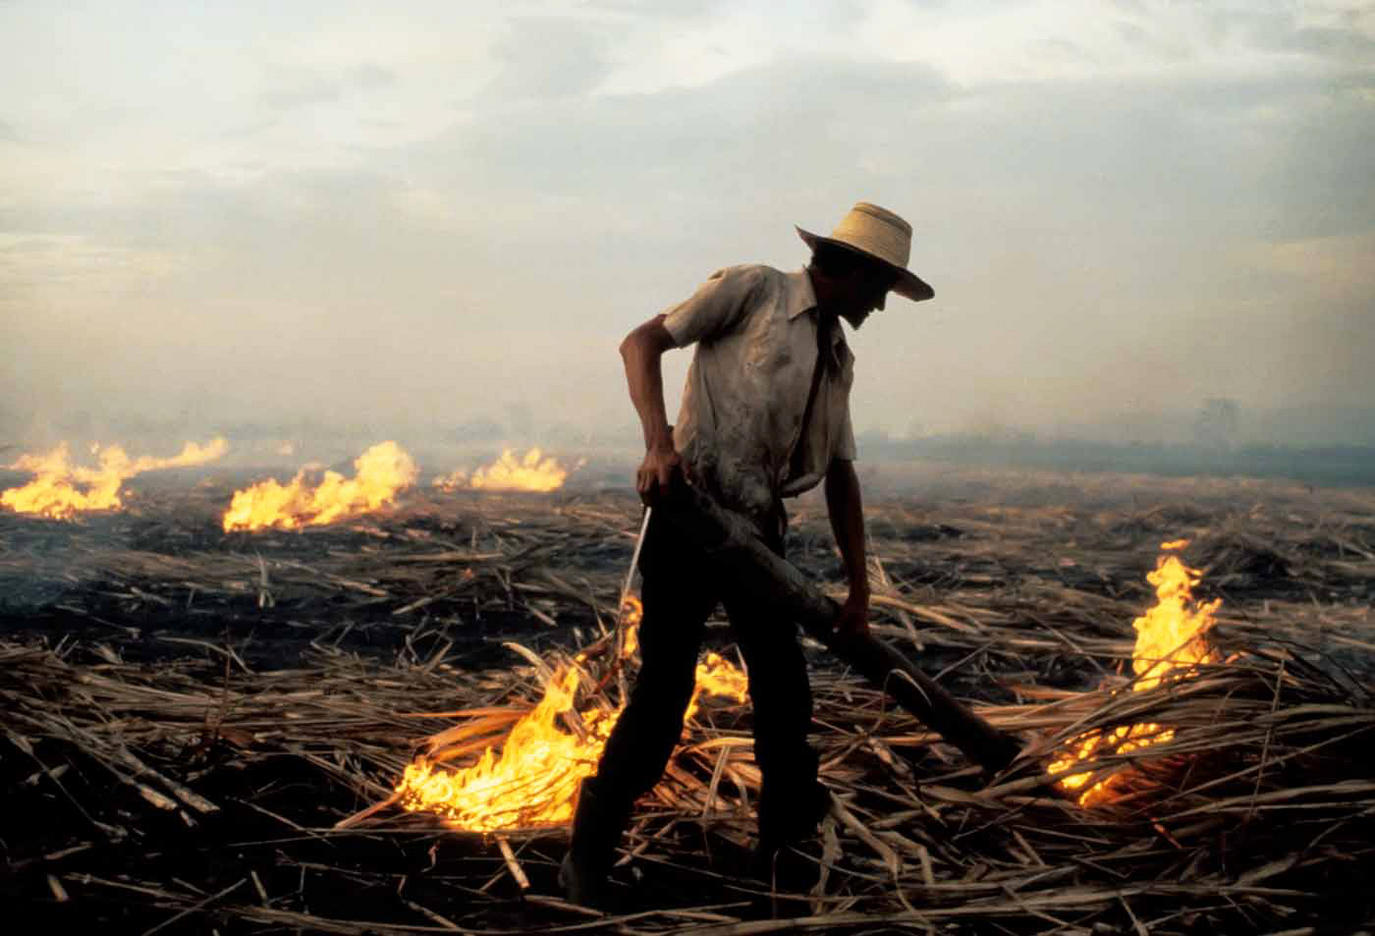 Burning the sugar cane fields in Colombia. : BUSINESS & INDUSTRY : Viviane Moos |  Documentary Photographer